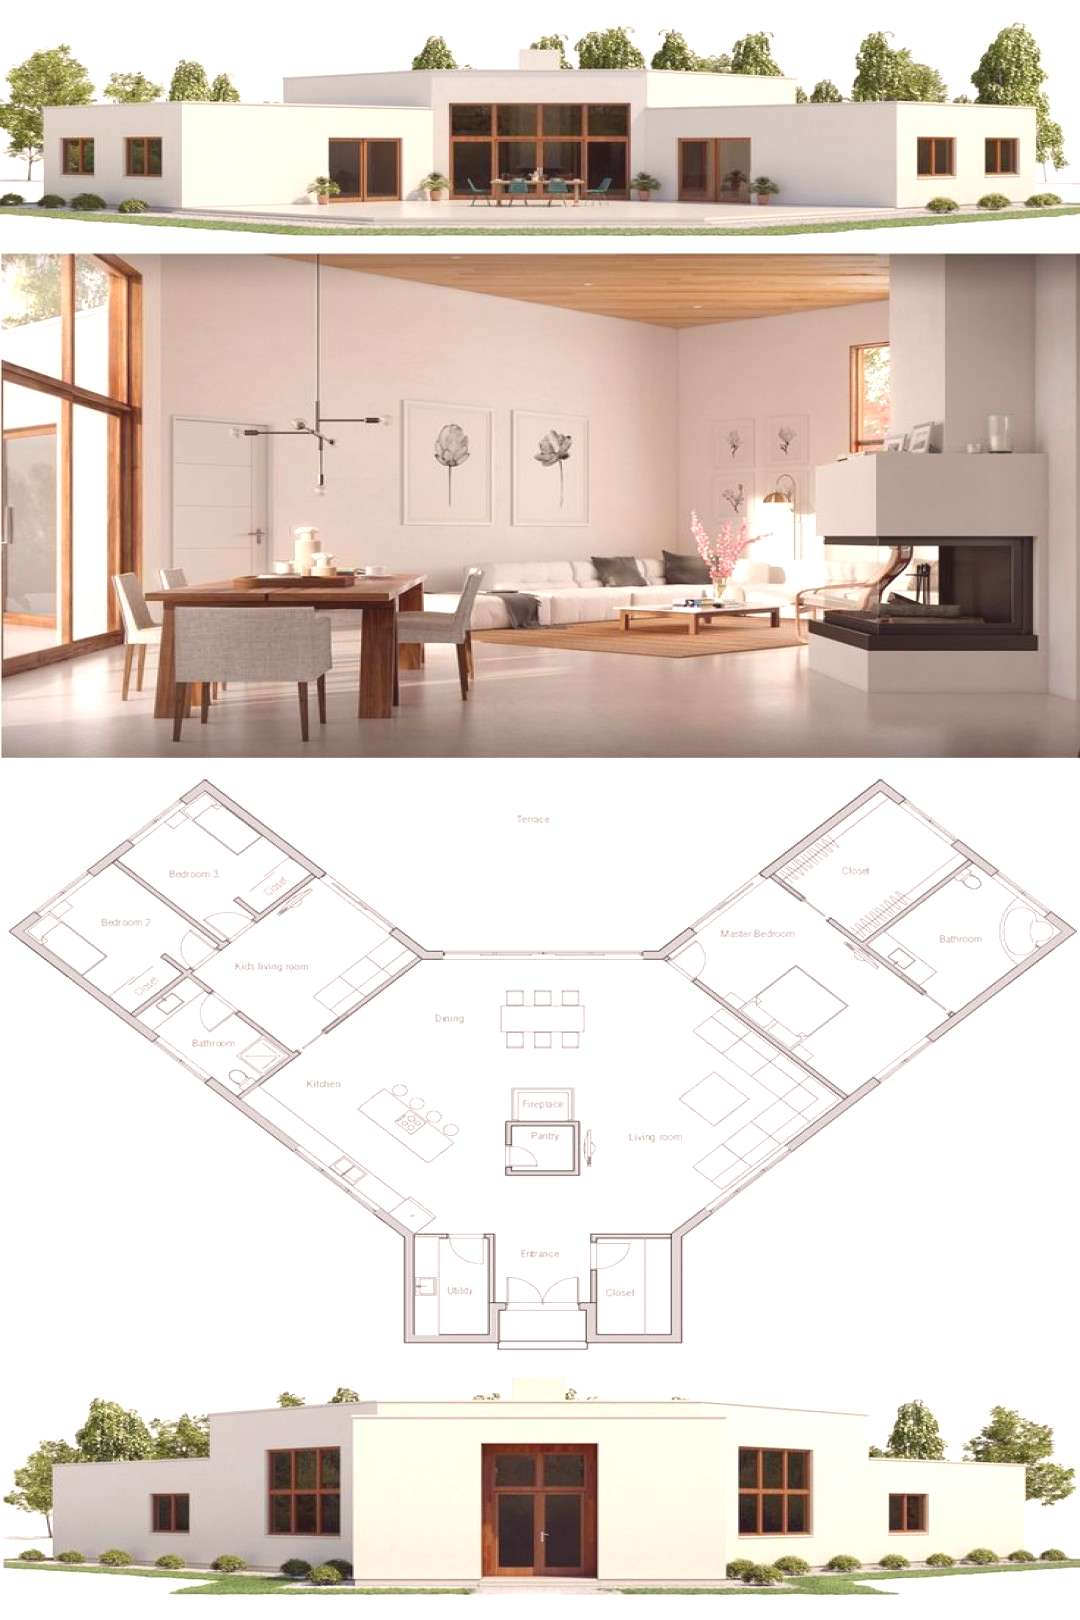 haus-plan-ch381 200 house project -  haus-plan-ch381 200 house project  -